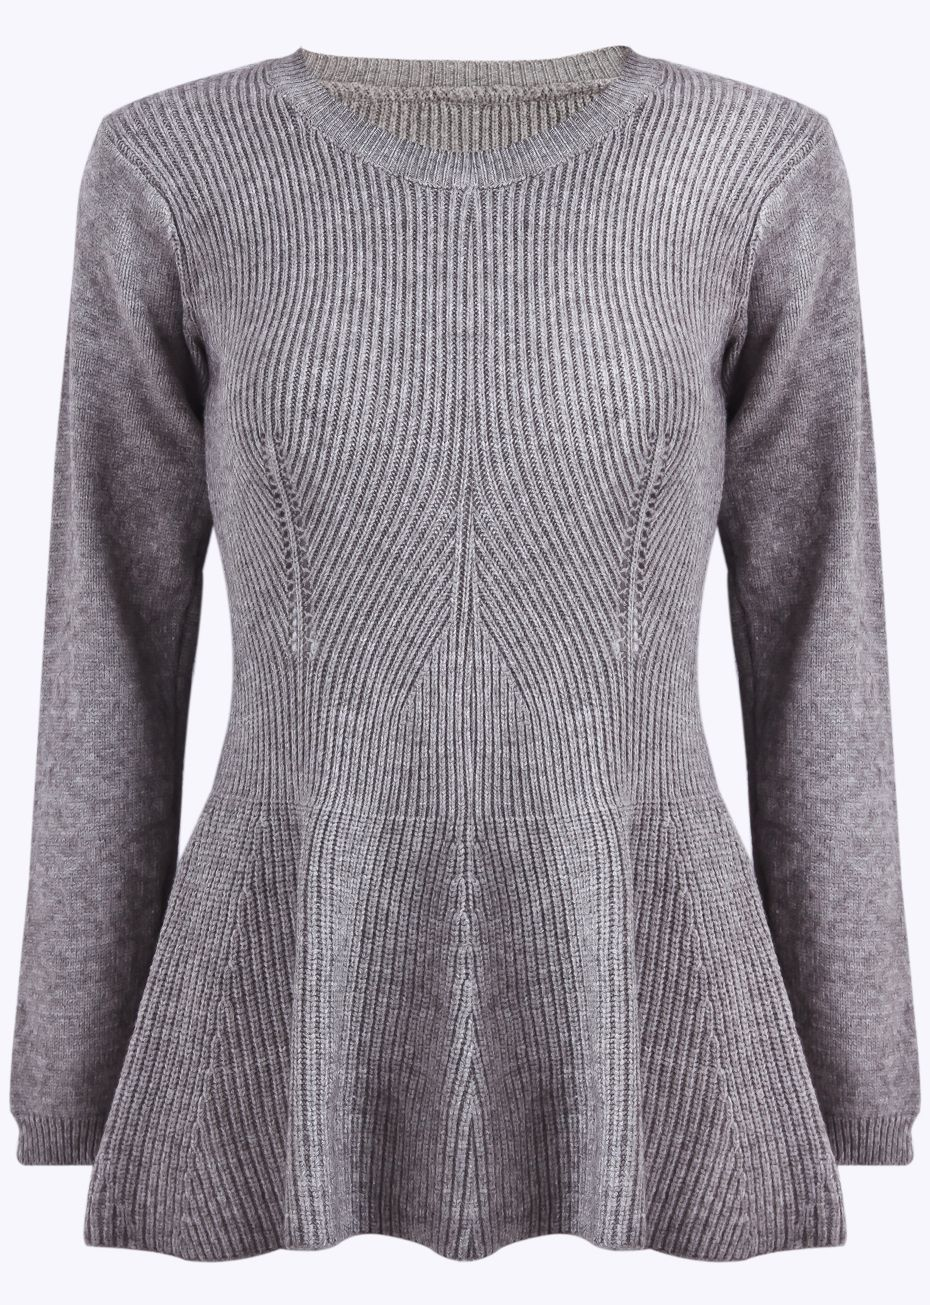 260ca5c7884fae SheIn offers Grey Long Sleeve Vintage Ruffle Knit Sweater   more to fit  your fashionable needs.